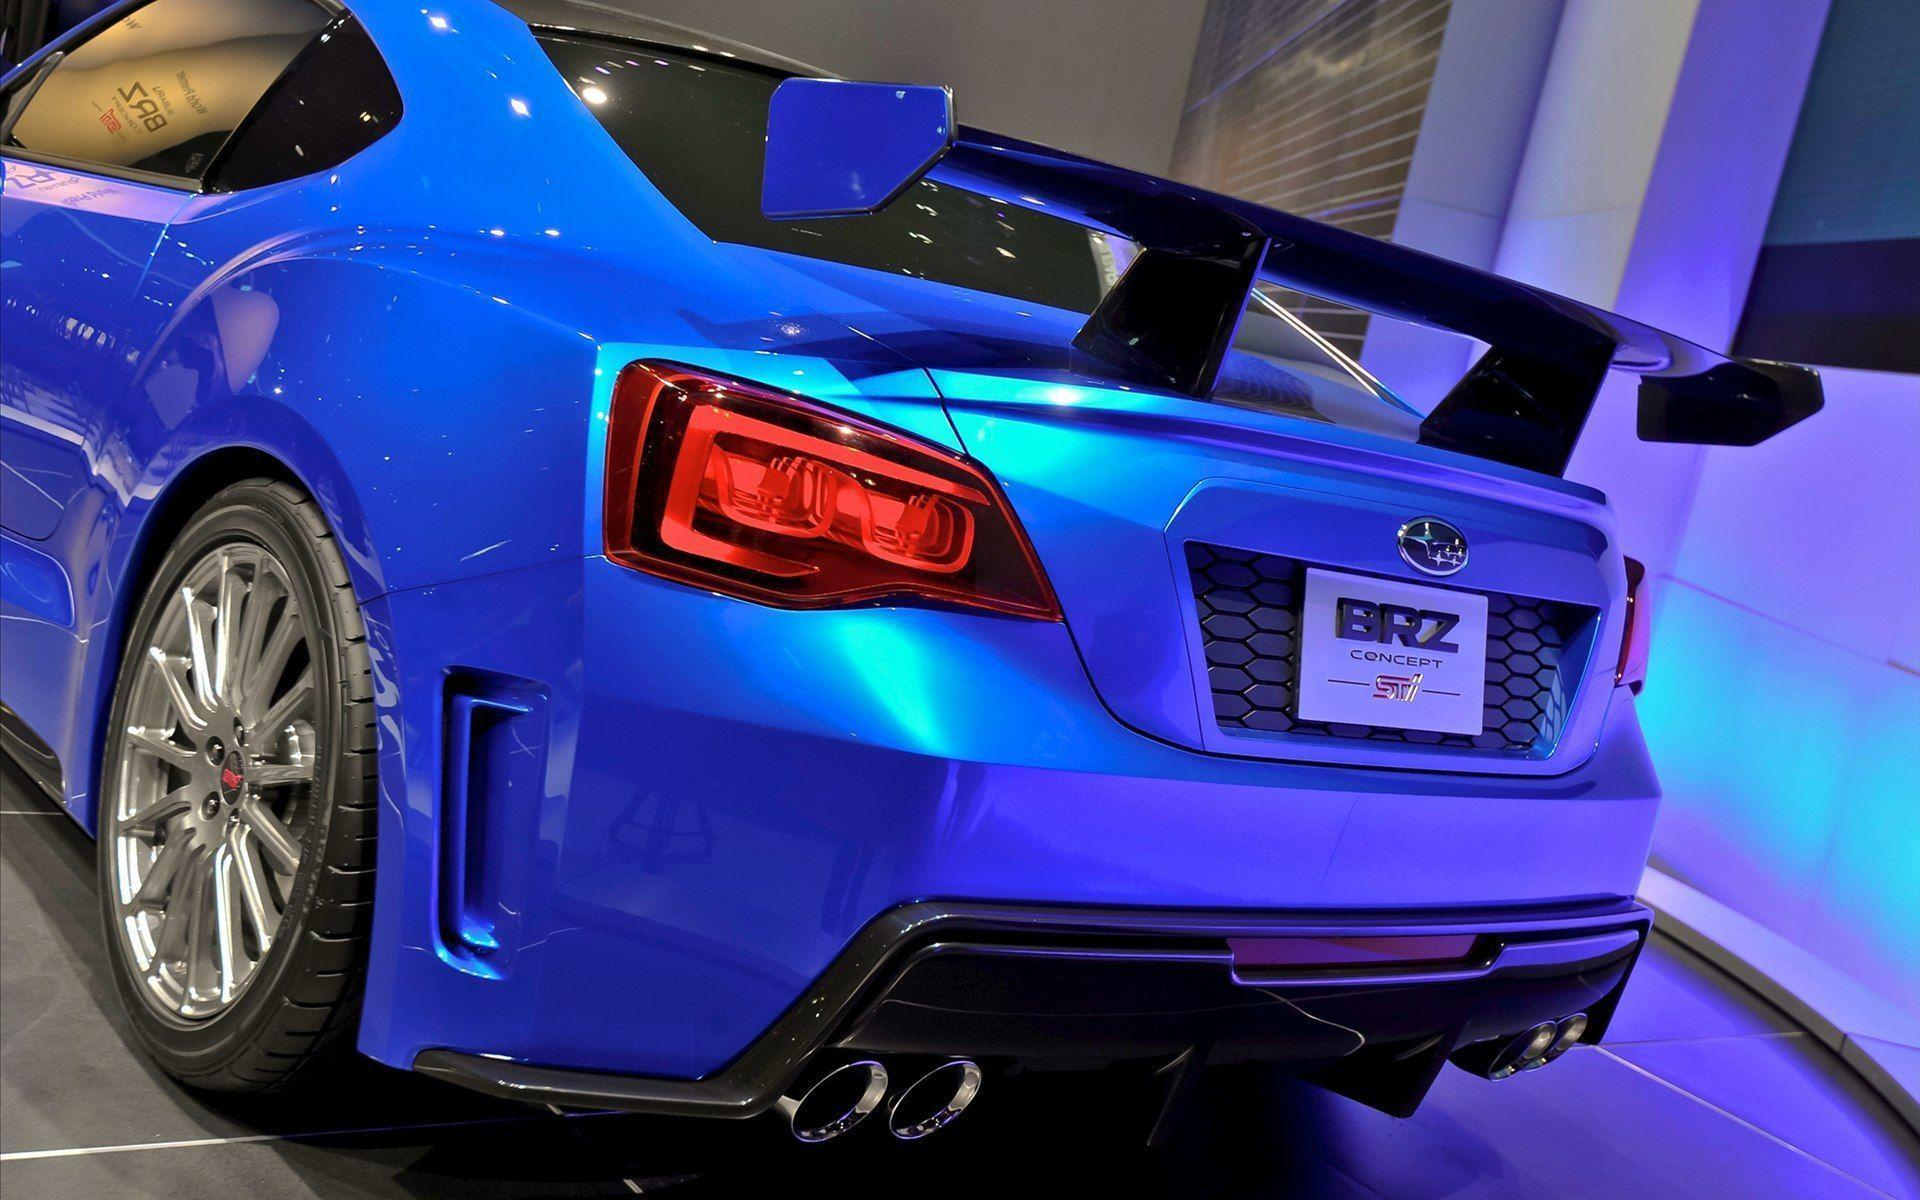 Subaru Brz Sti Wallpapers - Wallpaper Cave